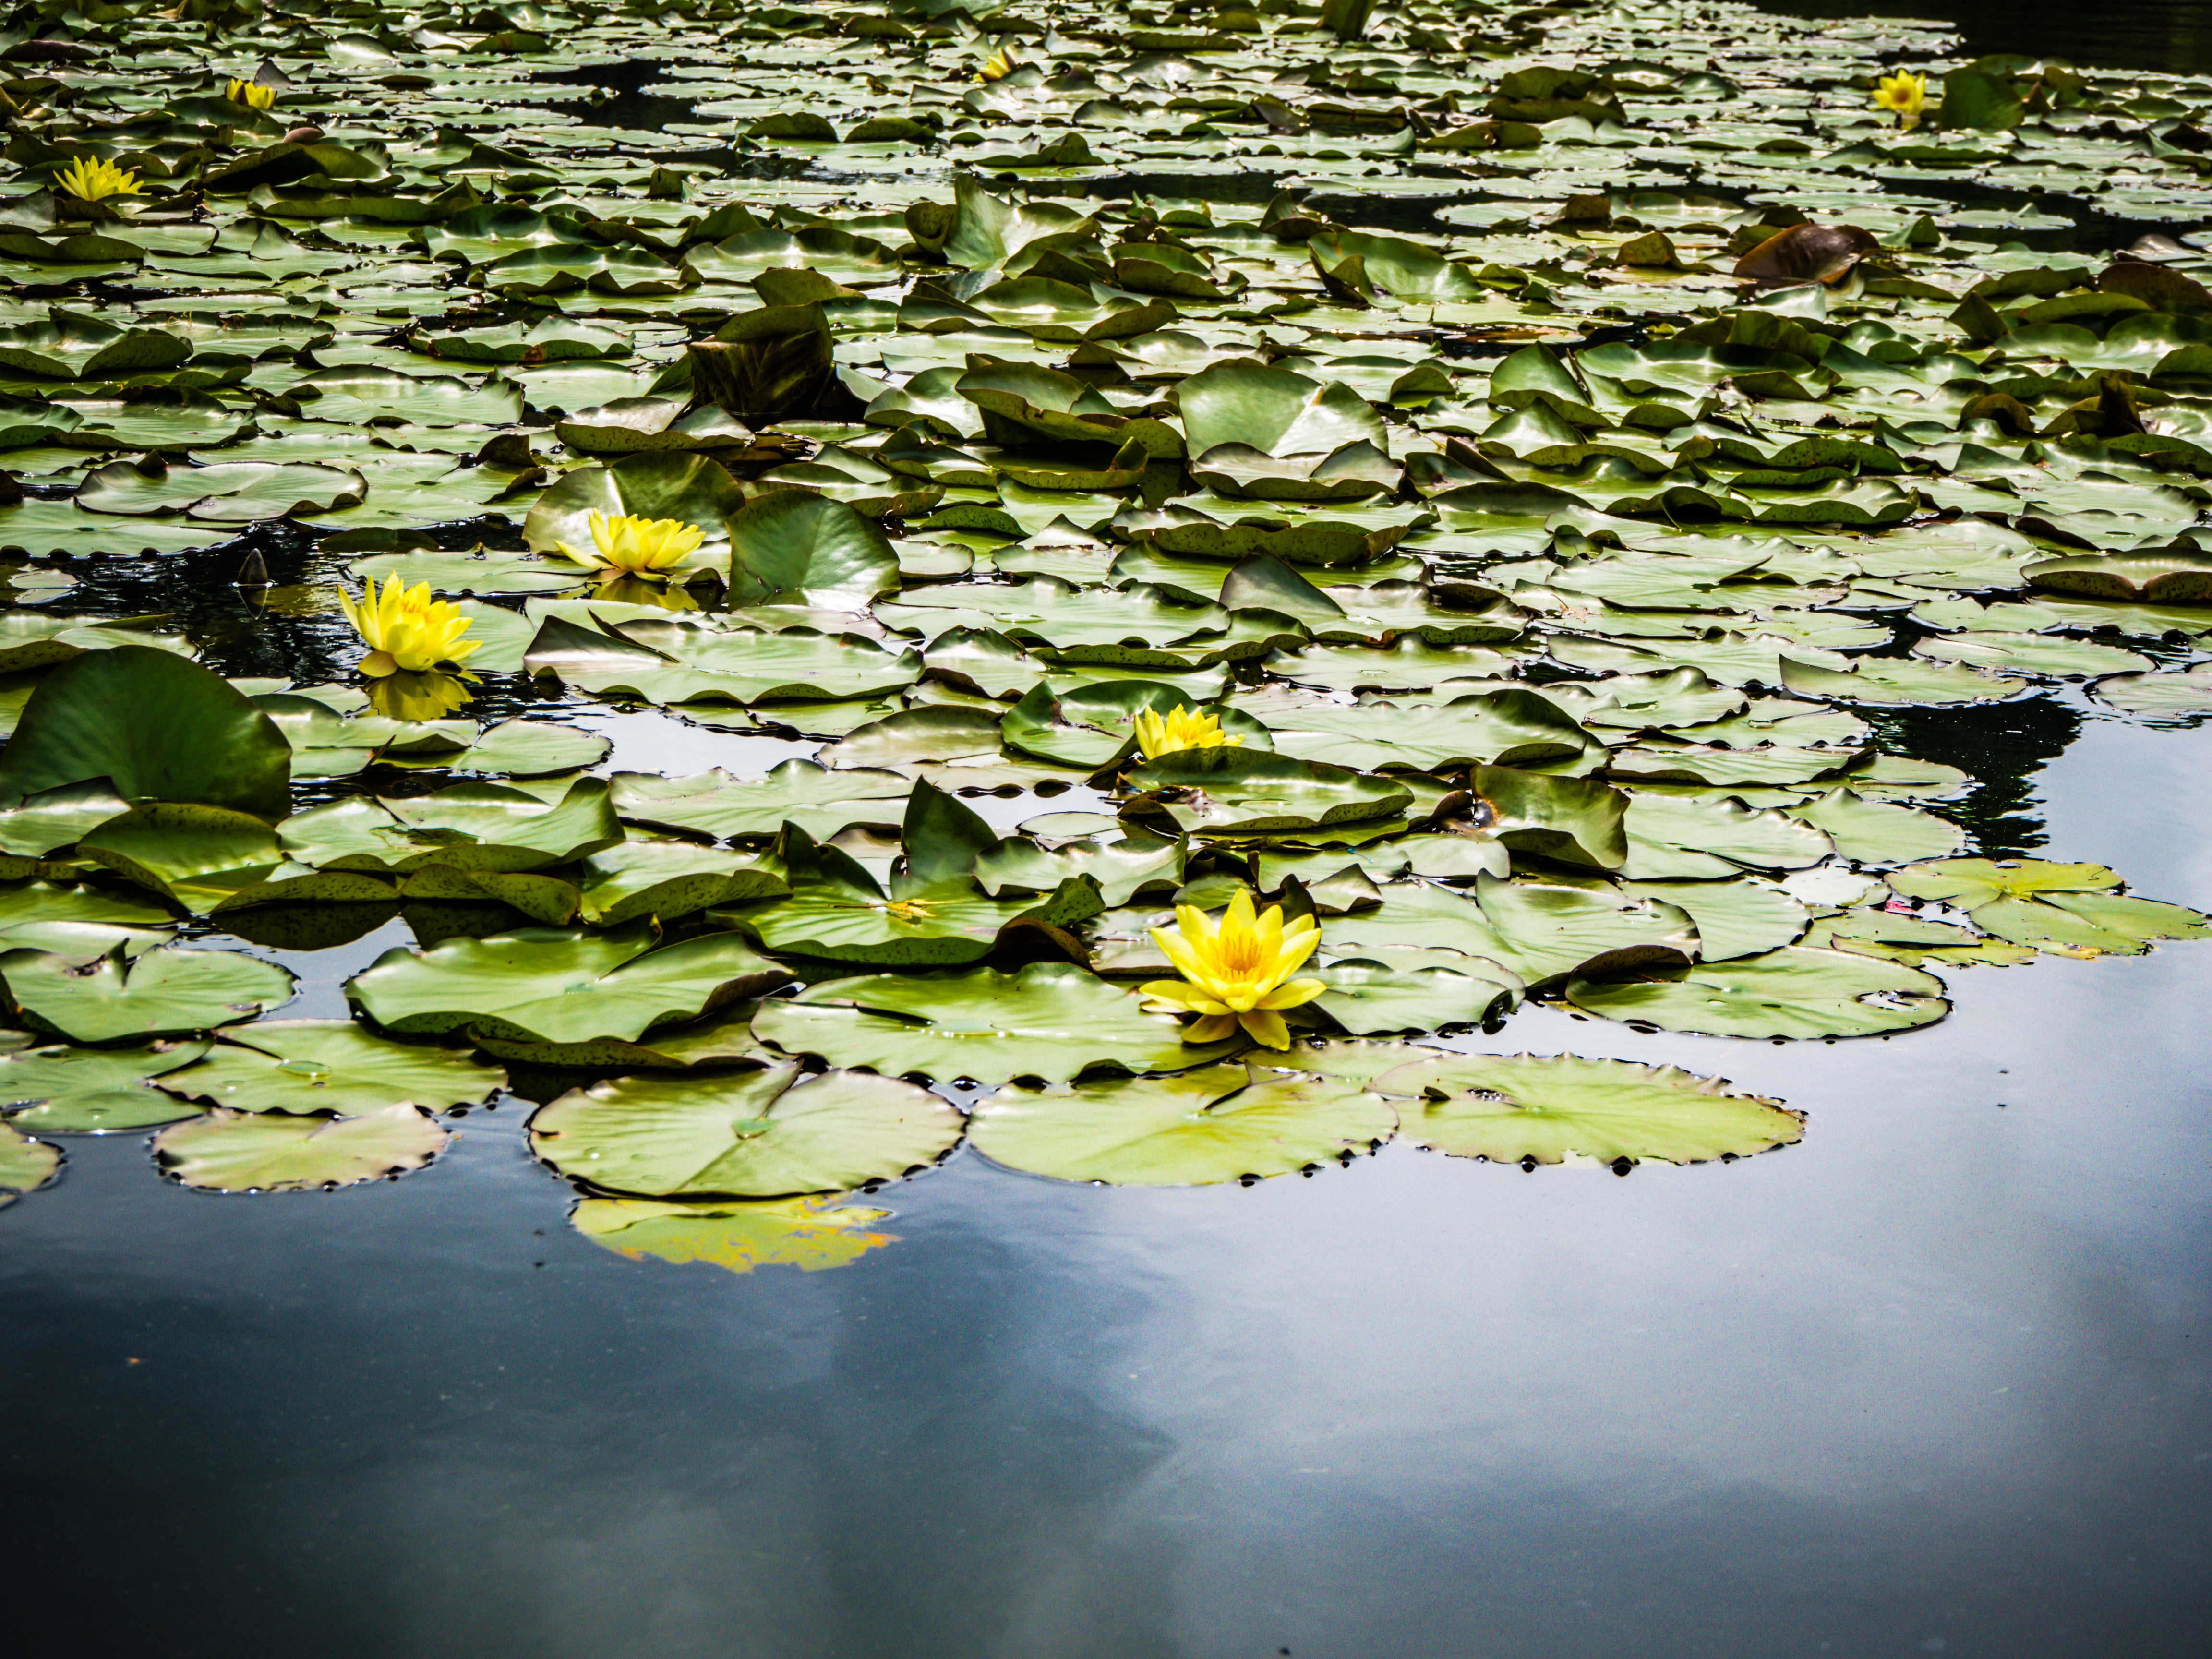 lily plants on body of water